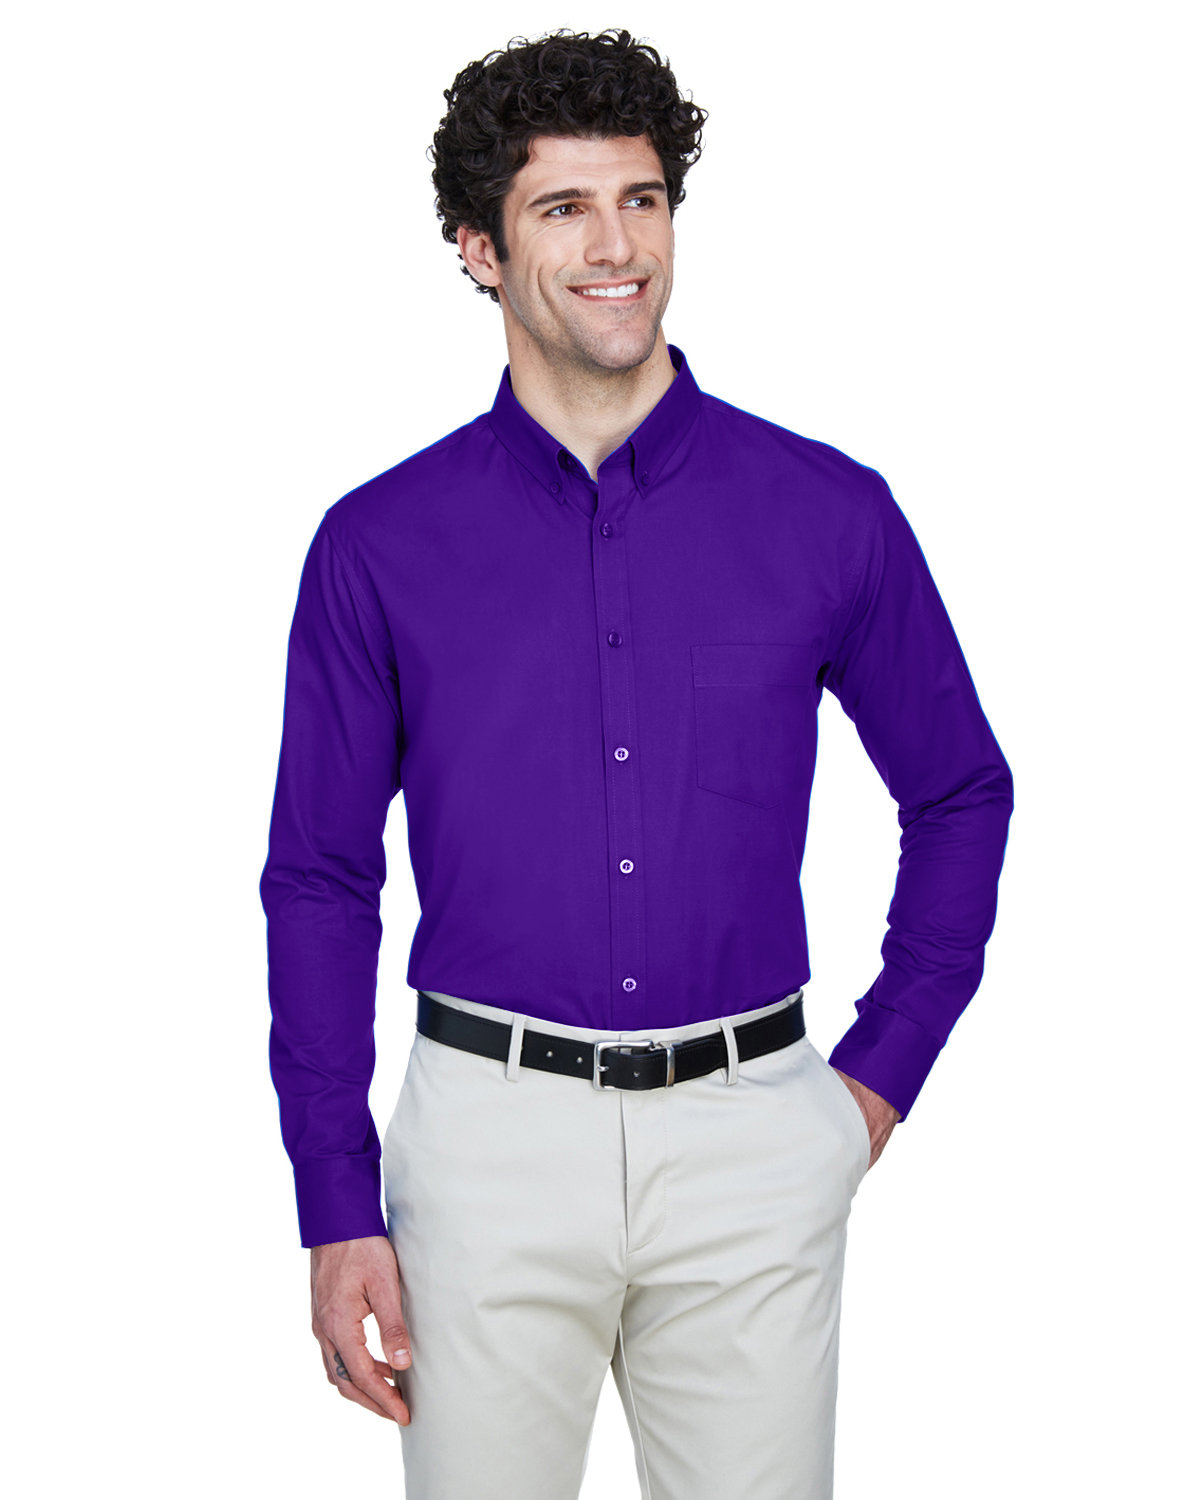 Core 365 Men's Operate Long-Sleeve Twill Shirt CAMPUS PURPLE